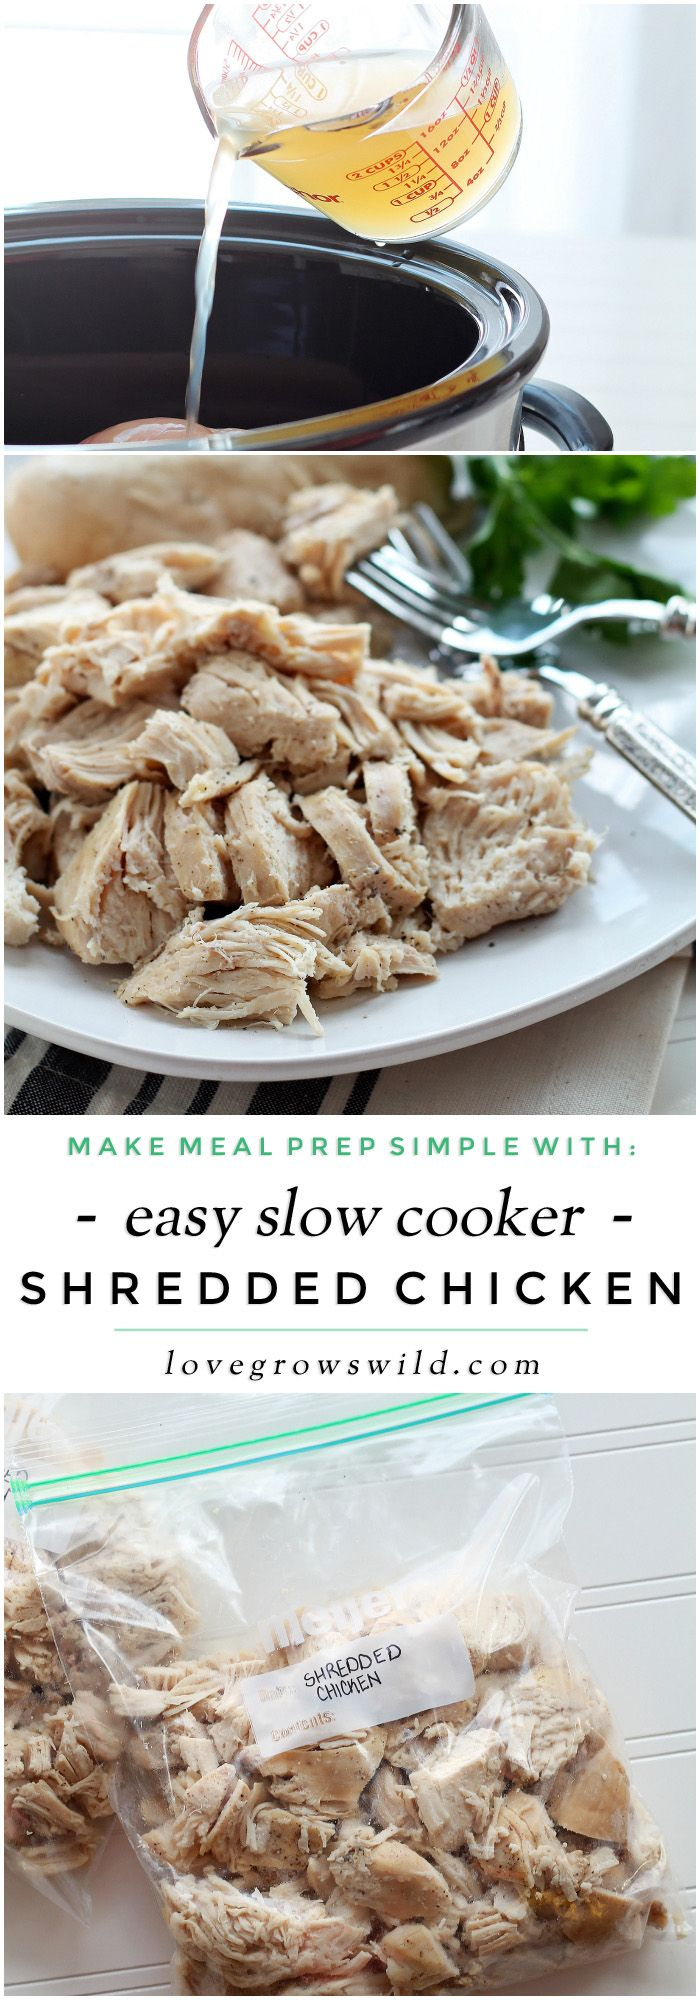 Add pounds of chicken, one jar of salsa, one can of drained black beans, one small bag of frozen corn, and one chopped jalapeno pepper to your crockpot. Cook on low for hours, or until the chicken has reached degrees internally. Using two forks, shred the chicken into small pieces.